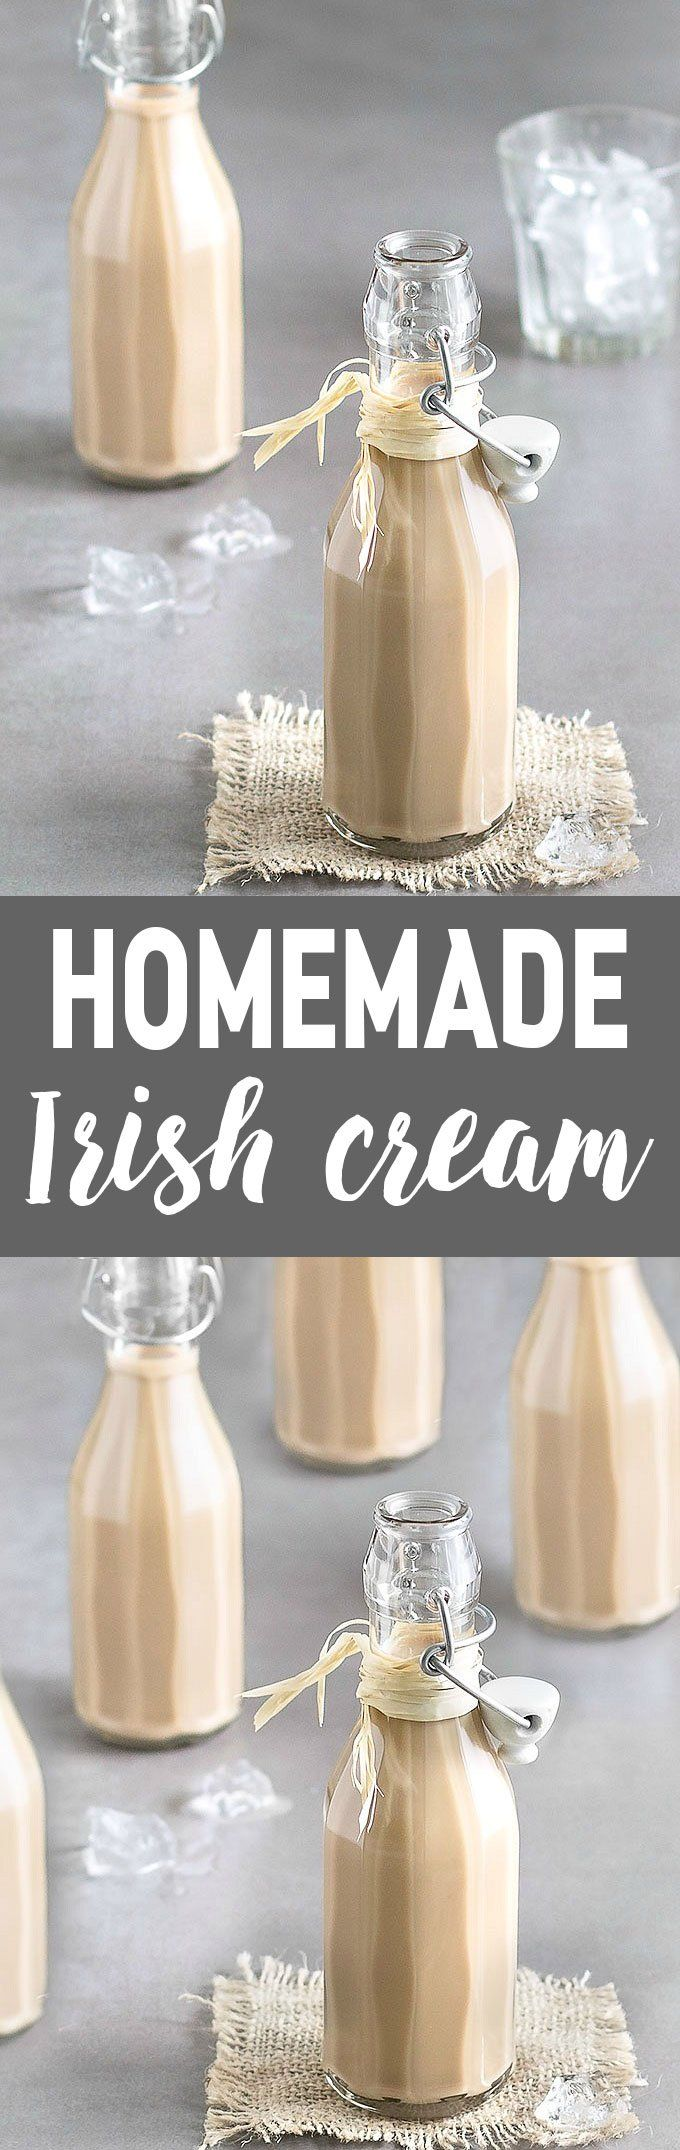 Homemade Baileys Irish Cream (Copycat) Learn how to make homemade Baileys Irish Cream with this quick and simple recipe. It's rich, creamy and velvety smooth! Perfect as a DIY gift for the holidays!